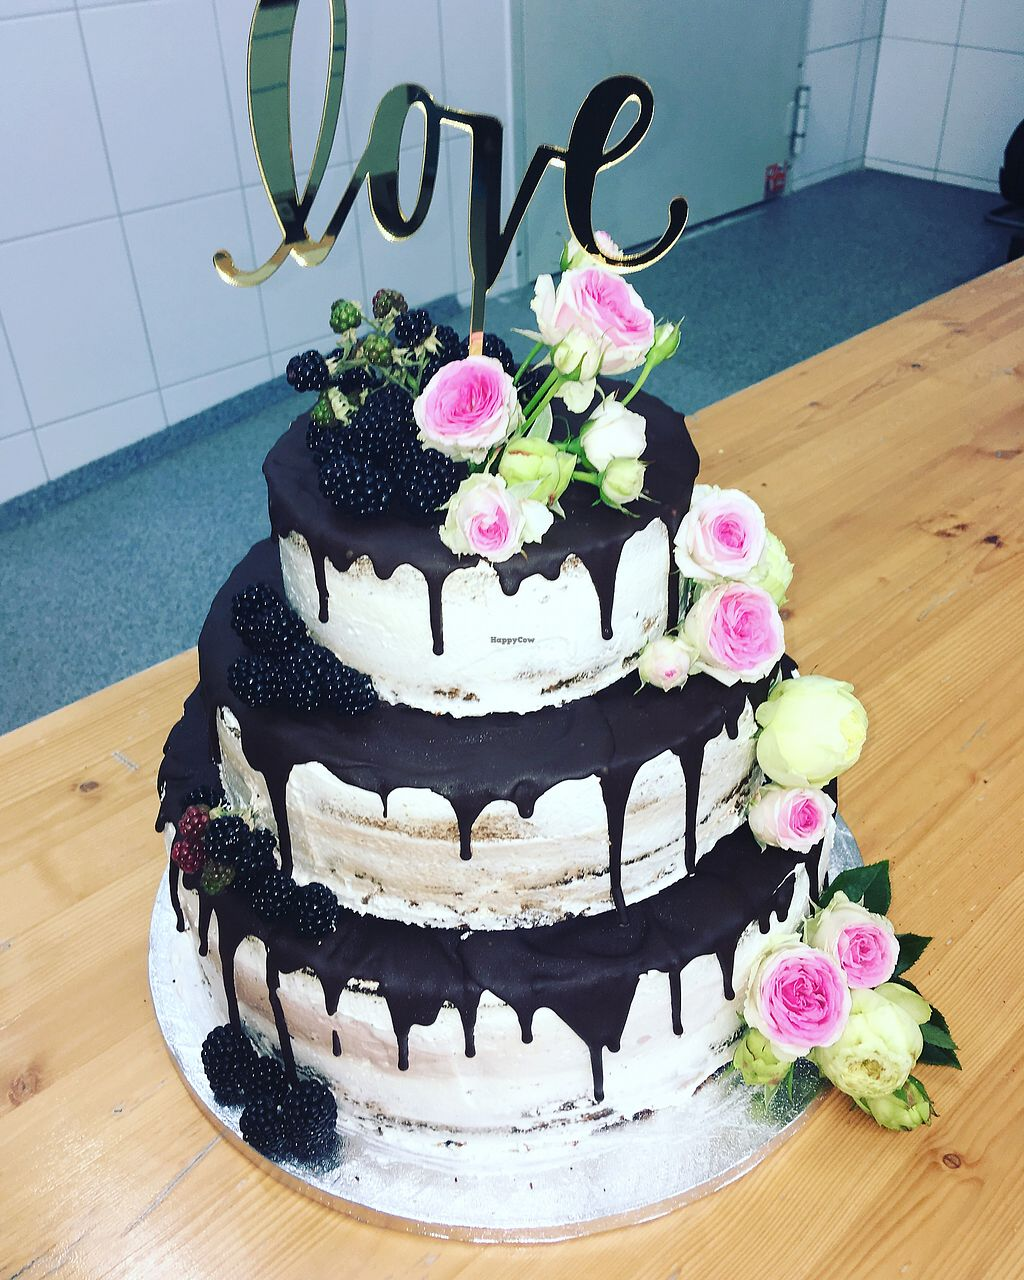 """Photo of Leckerschmecker Küchenfee  by <a href=""""/members/profile/Kuechenfee"""">Kuechenfee</a> <br/>vegan weeding cake <br/> August 19, 2017  - <a href='/contact/abuse/image/76132/294384'>Report</a>"""